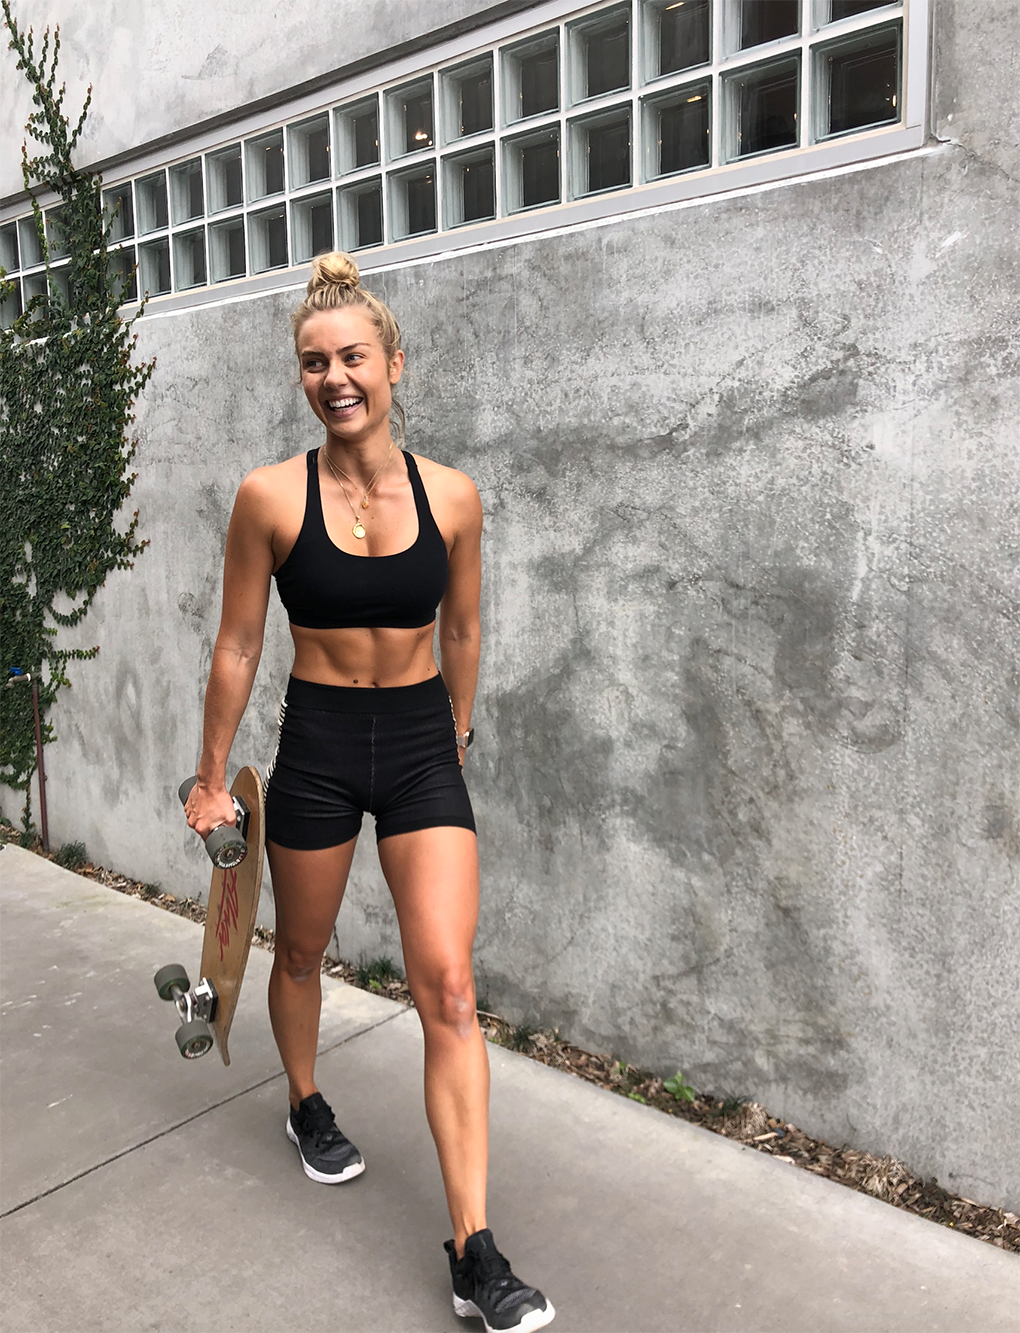 ELYSE KNOWLES SKATEBOARD WORKOUT OCT 2019 0.png